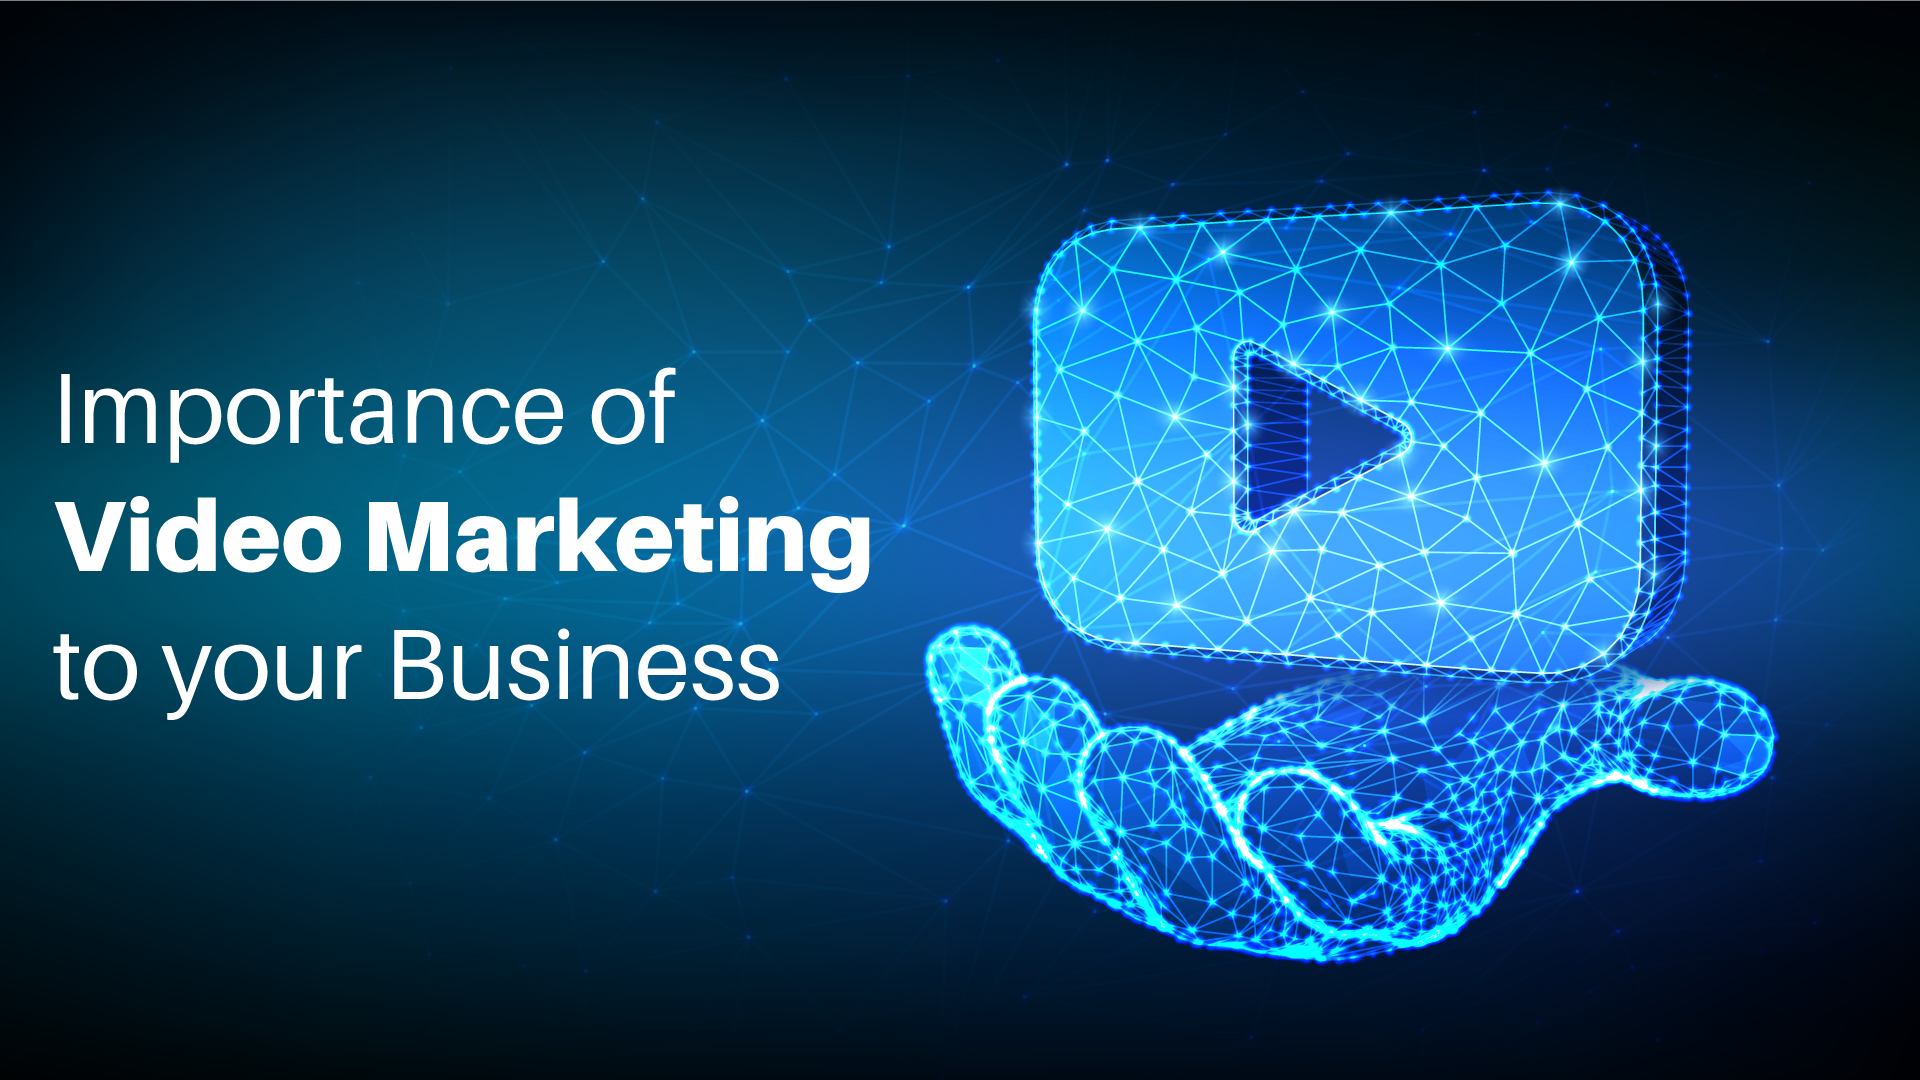 Importance of Video Marketing to your Business